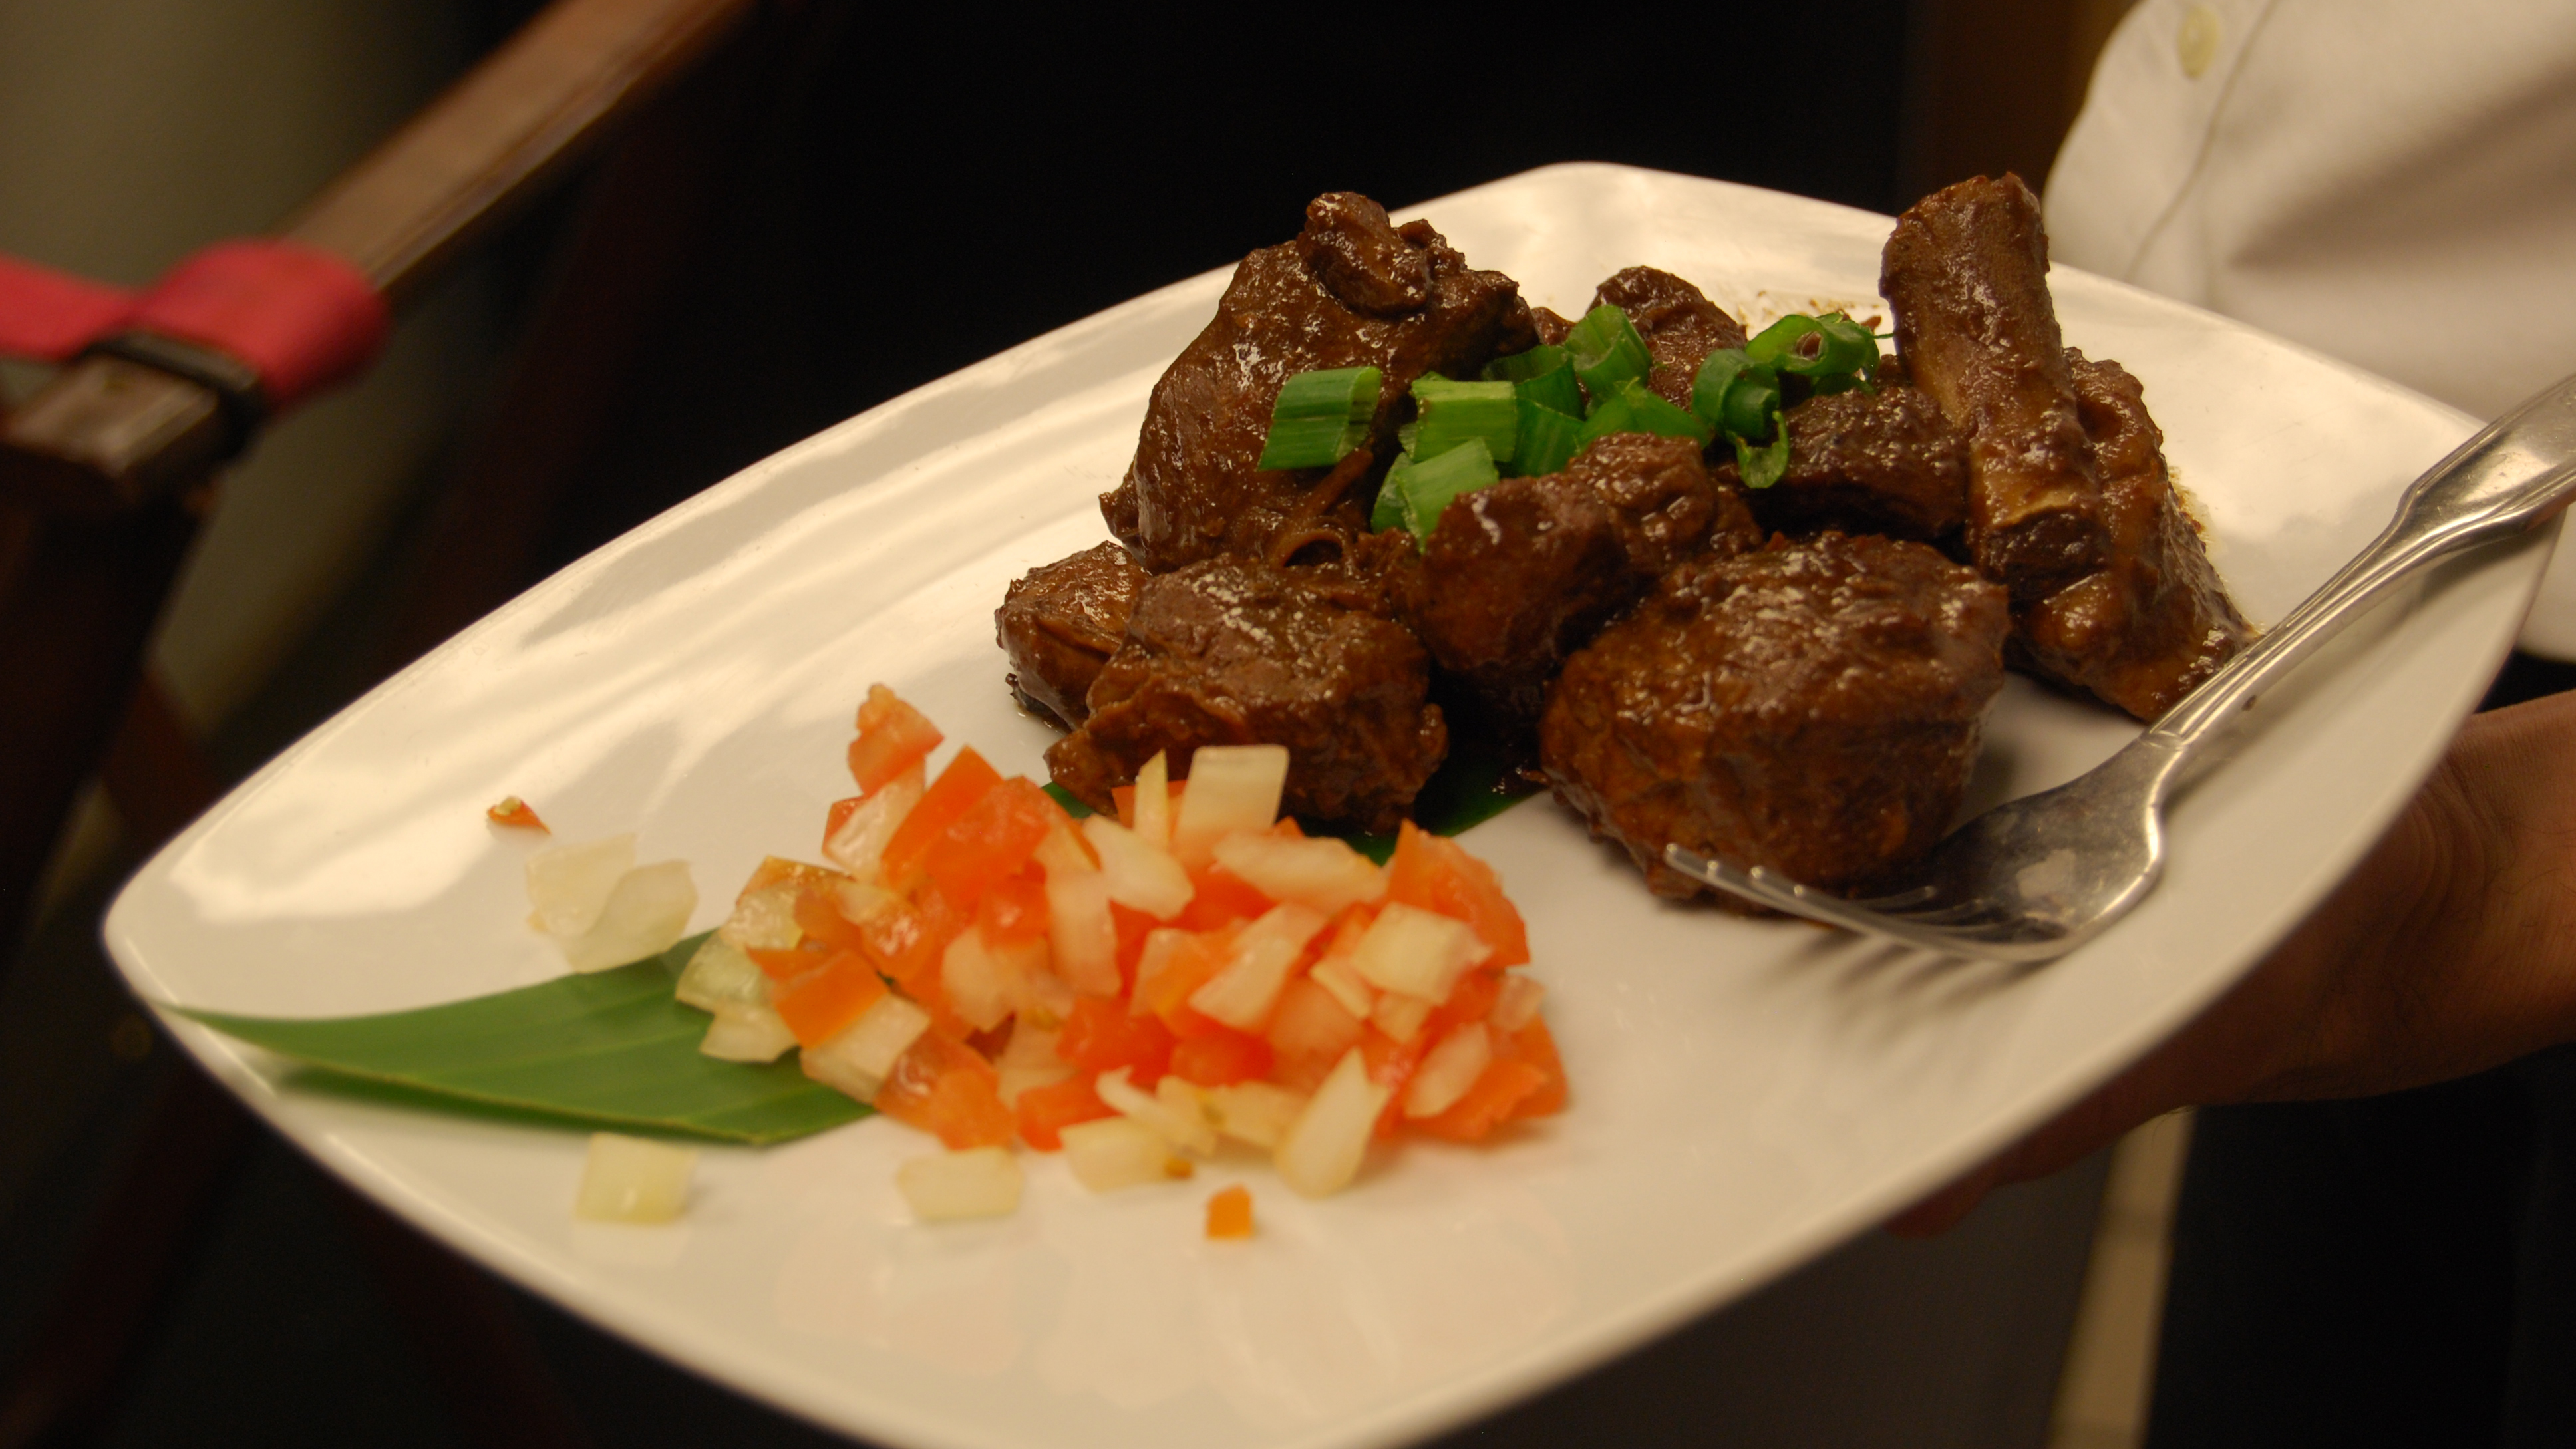 Max's Pinatuyong Pork Adobo, braised and spiced and using cooking methods popular in the Philippines. Max's has been serving food in the Philippines since 1945.